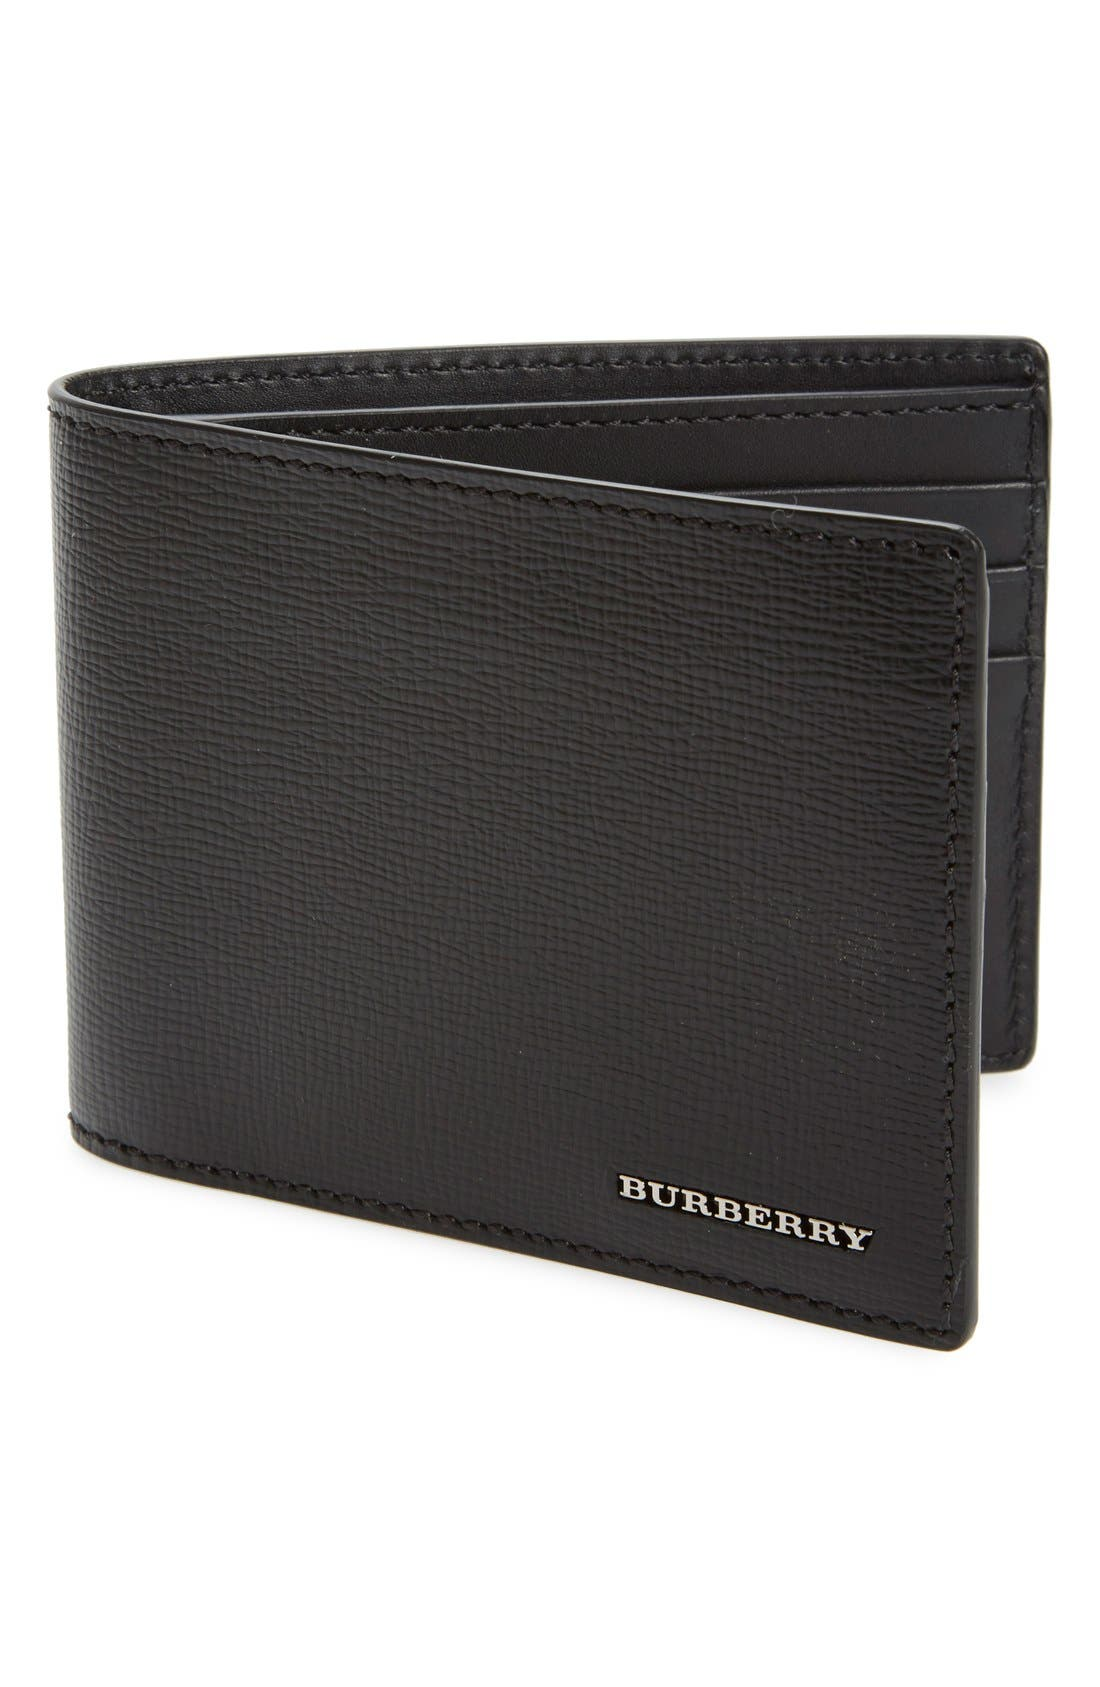 BURBERRY New London Calfskin Leather Bifold Wallet